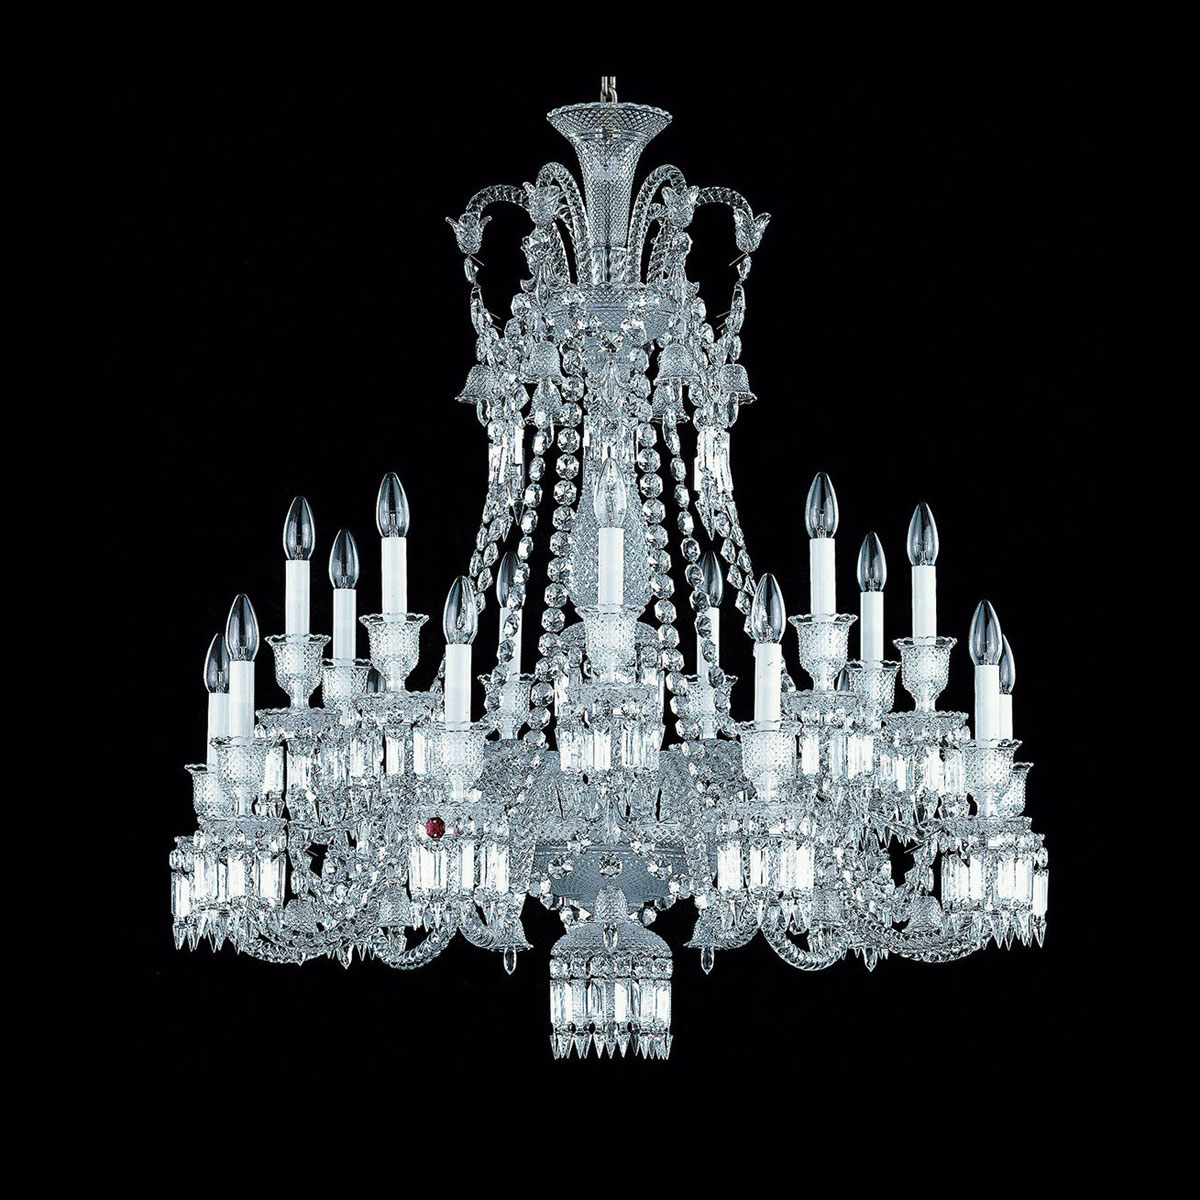 Baccarat Crystal, Zenith Long Chandelier, 18 Light